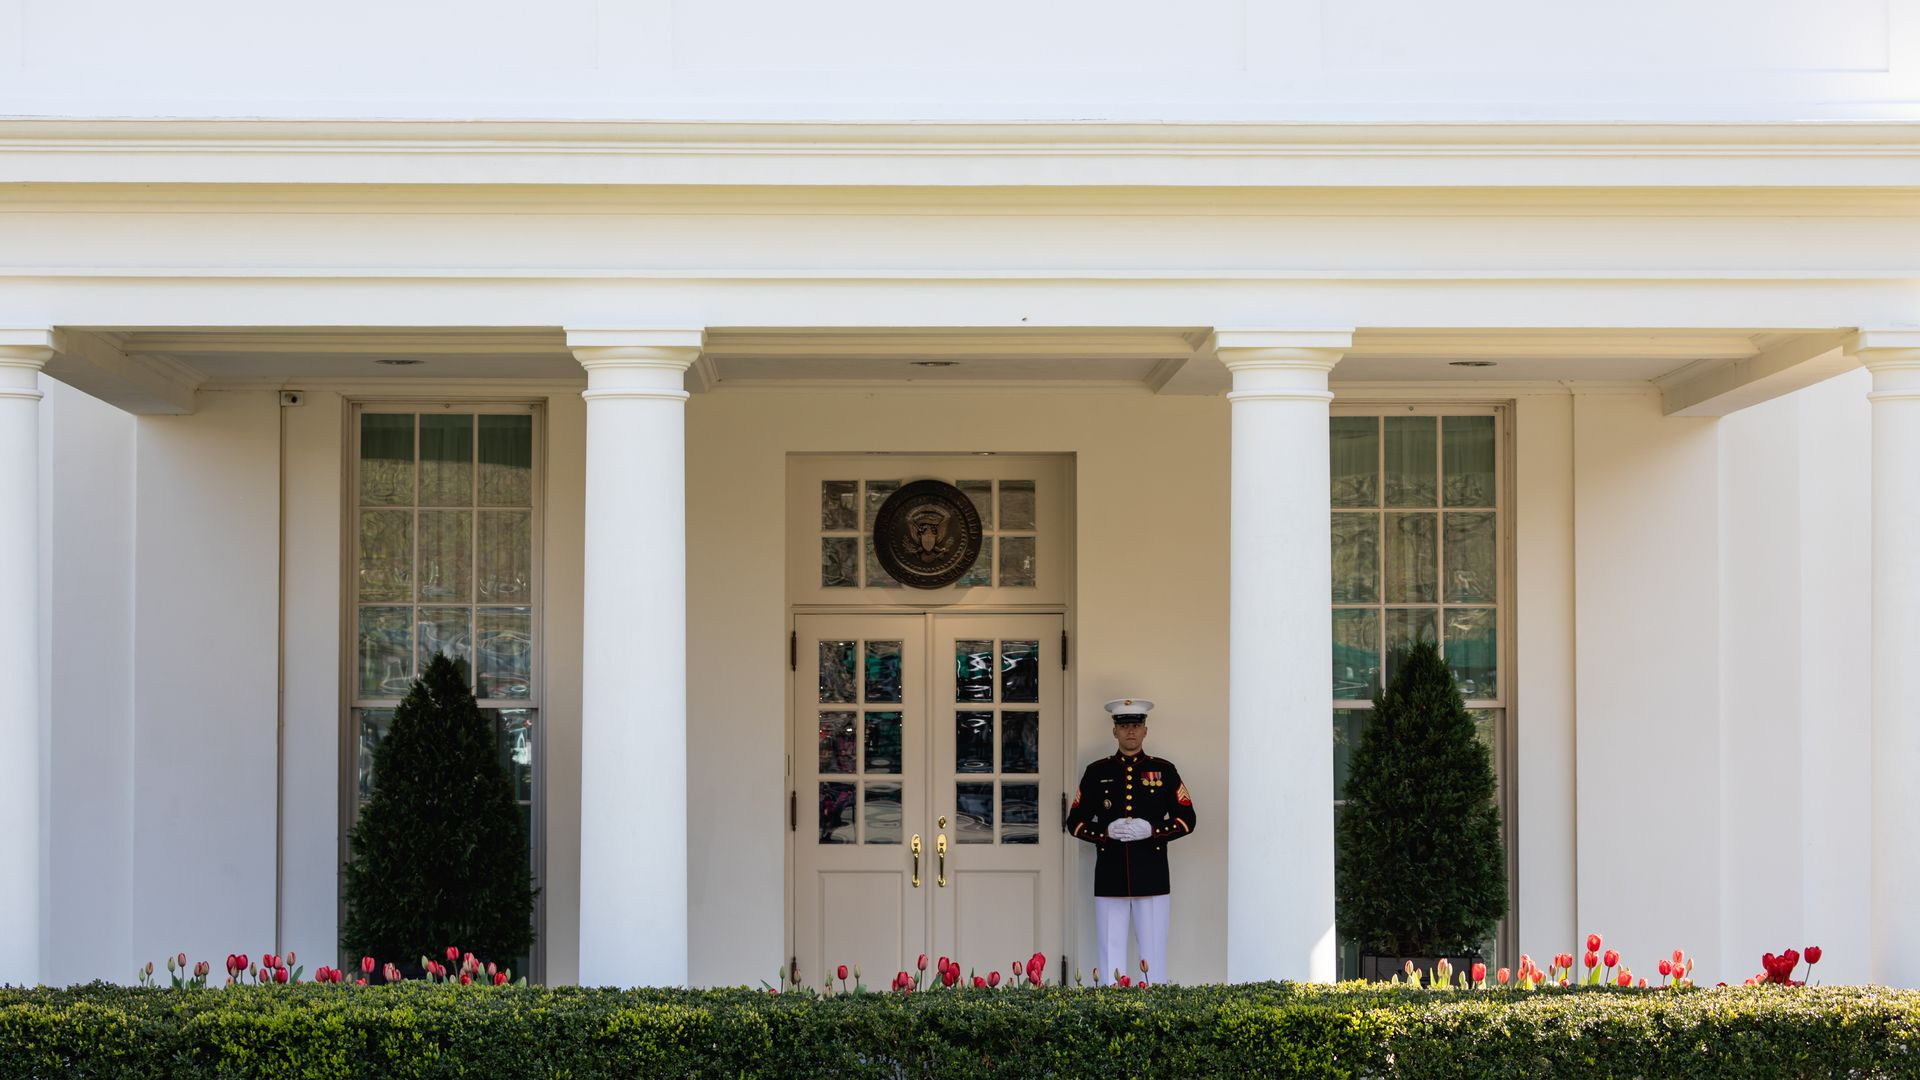 A U.S. Marine stands outside the West Wing of the White House.